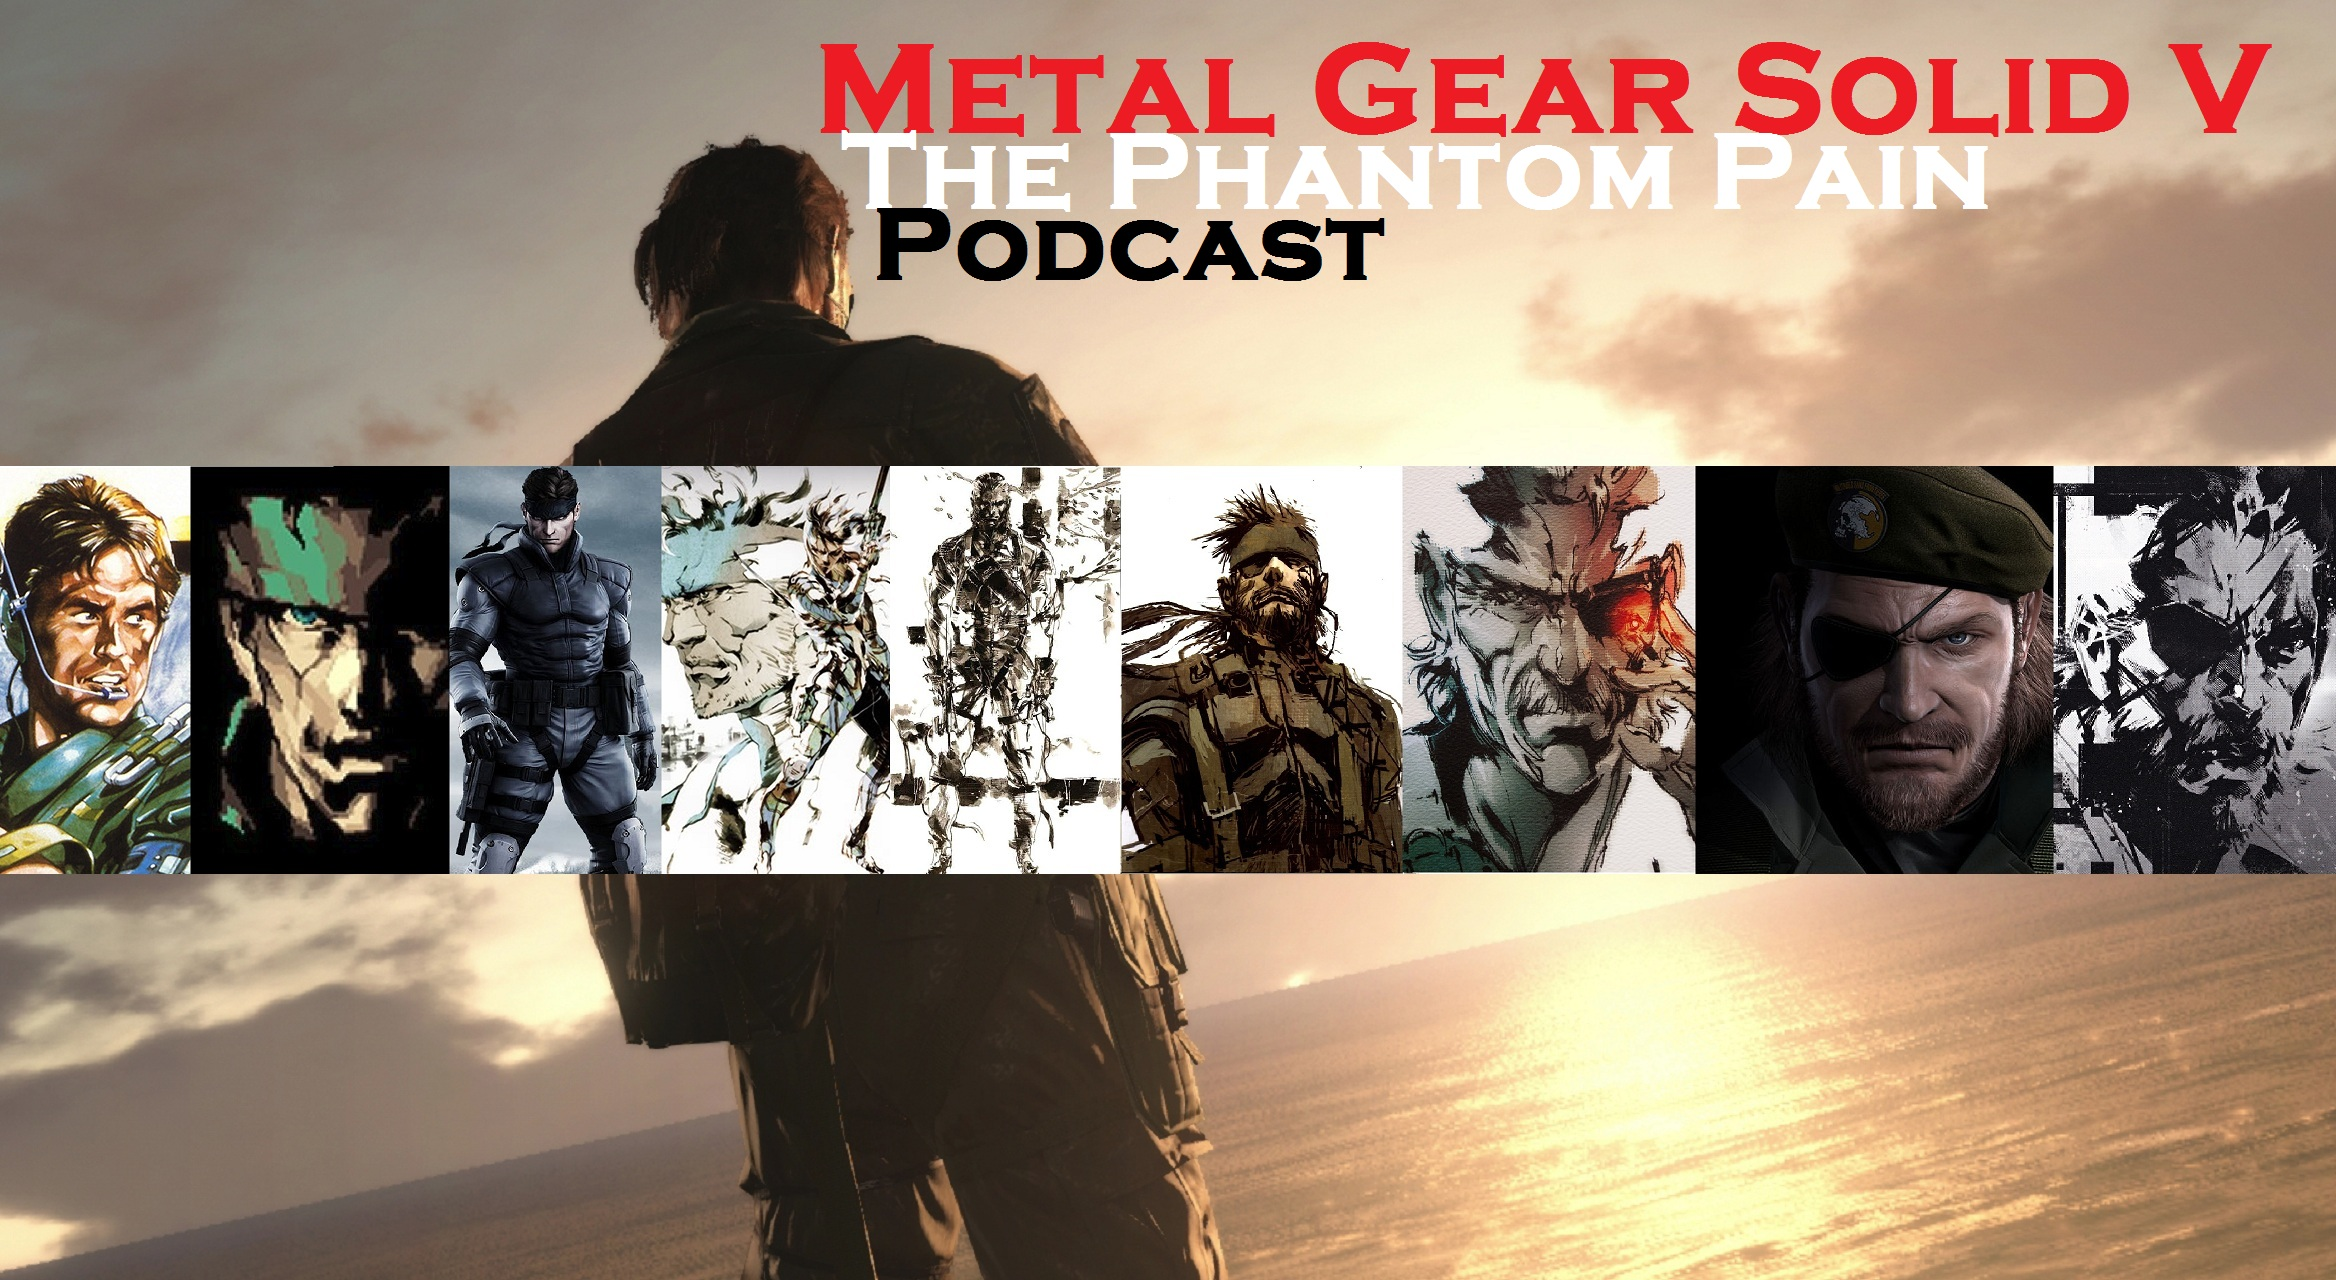 Metal Gear Solid V The Phantom Pain Podcast